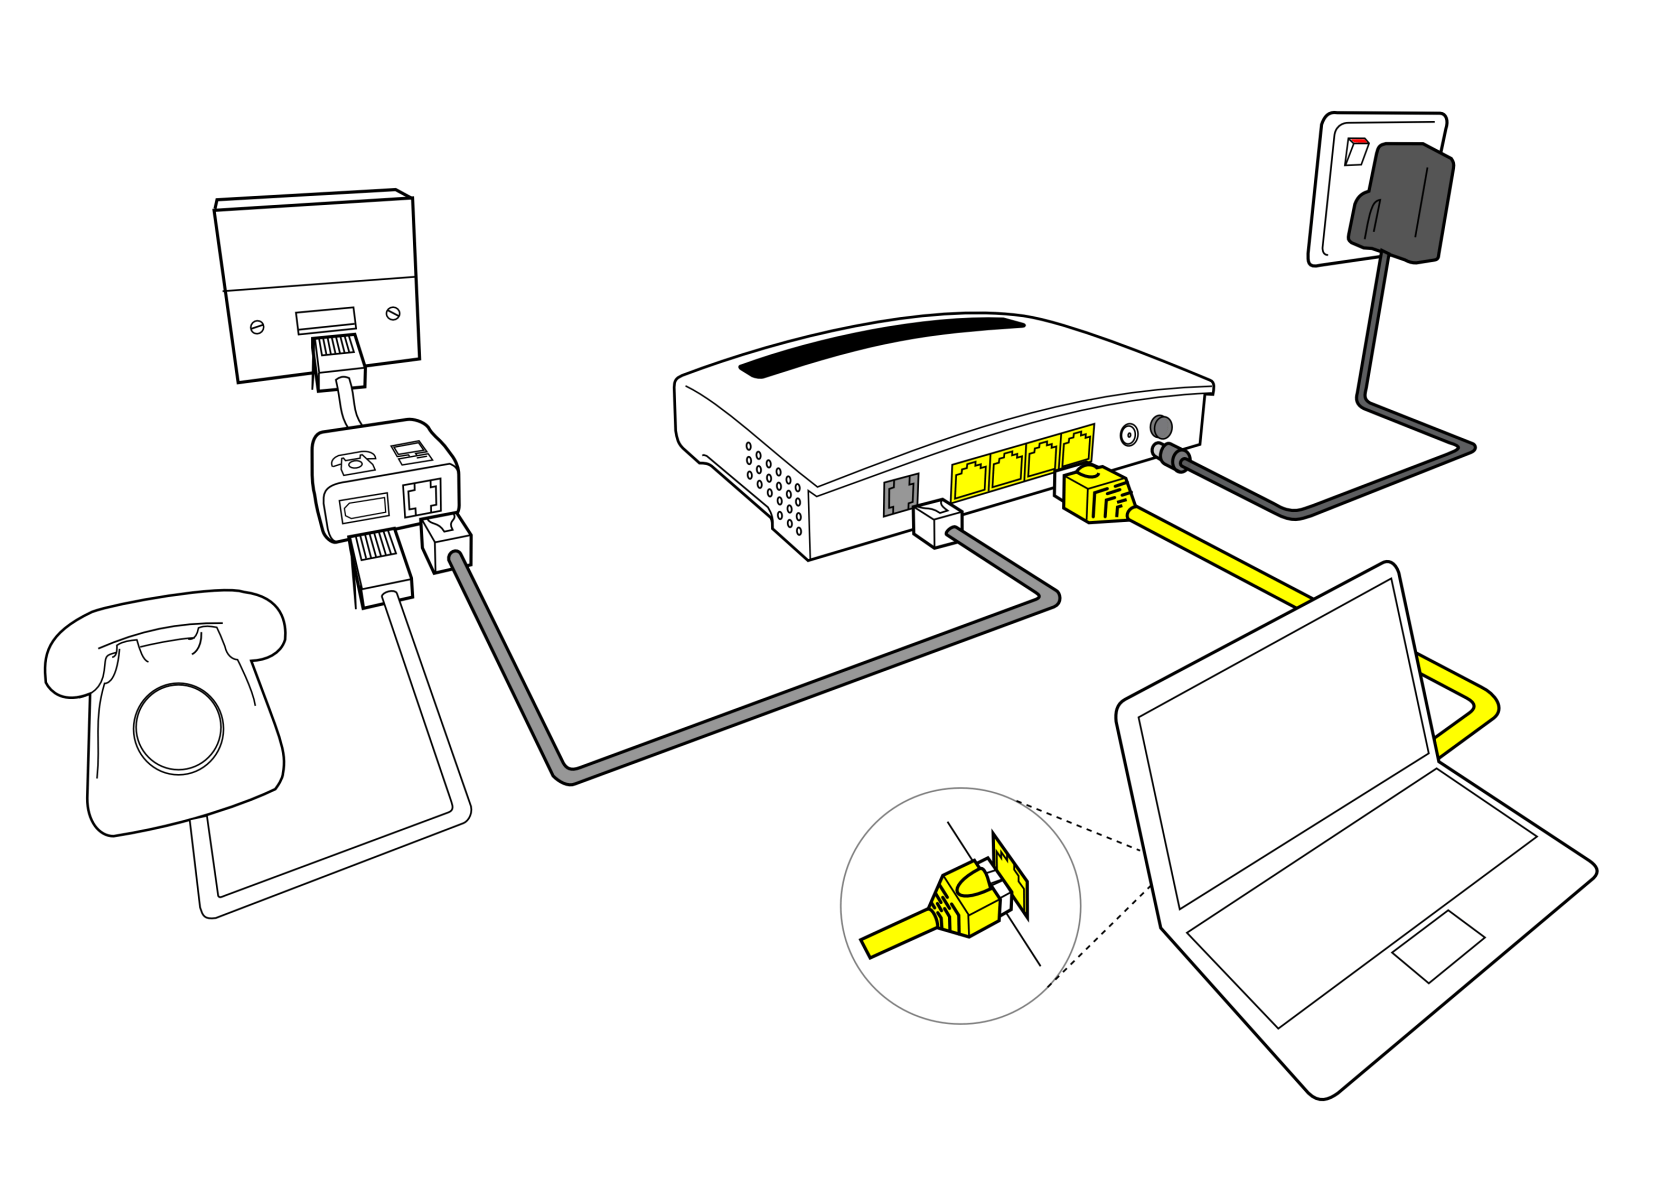 telephone socket wiring diagram uk danfoss mid position valve broadband getting connected technicolor wired setup